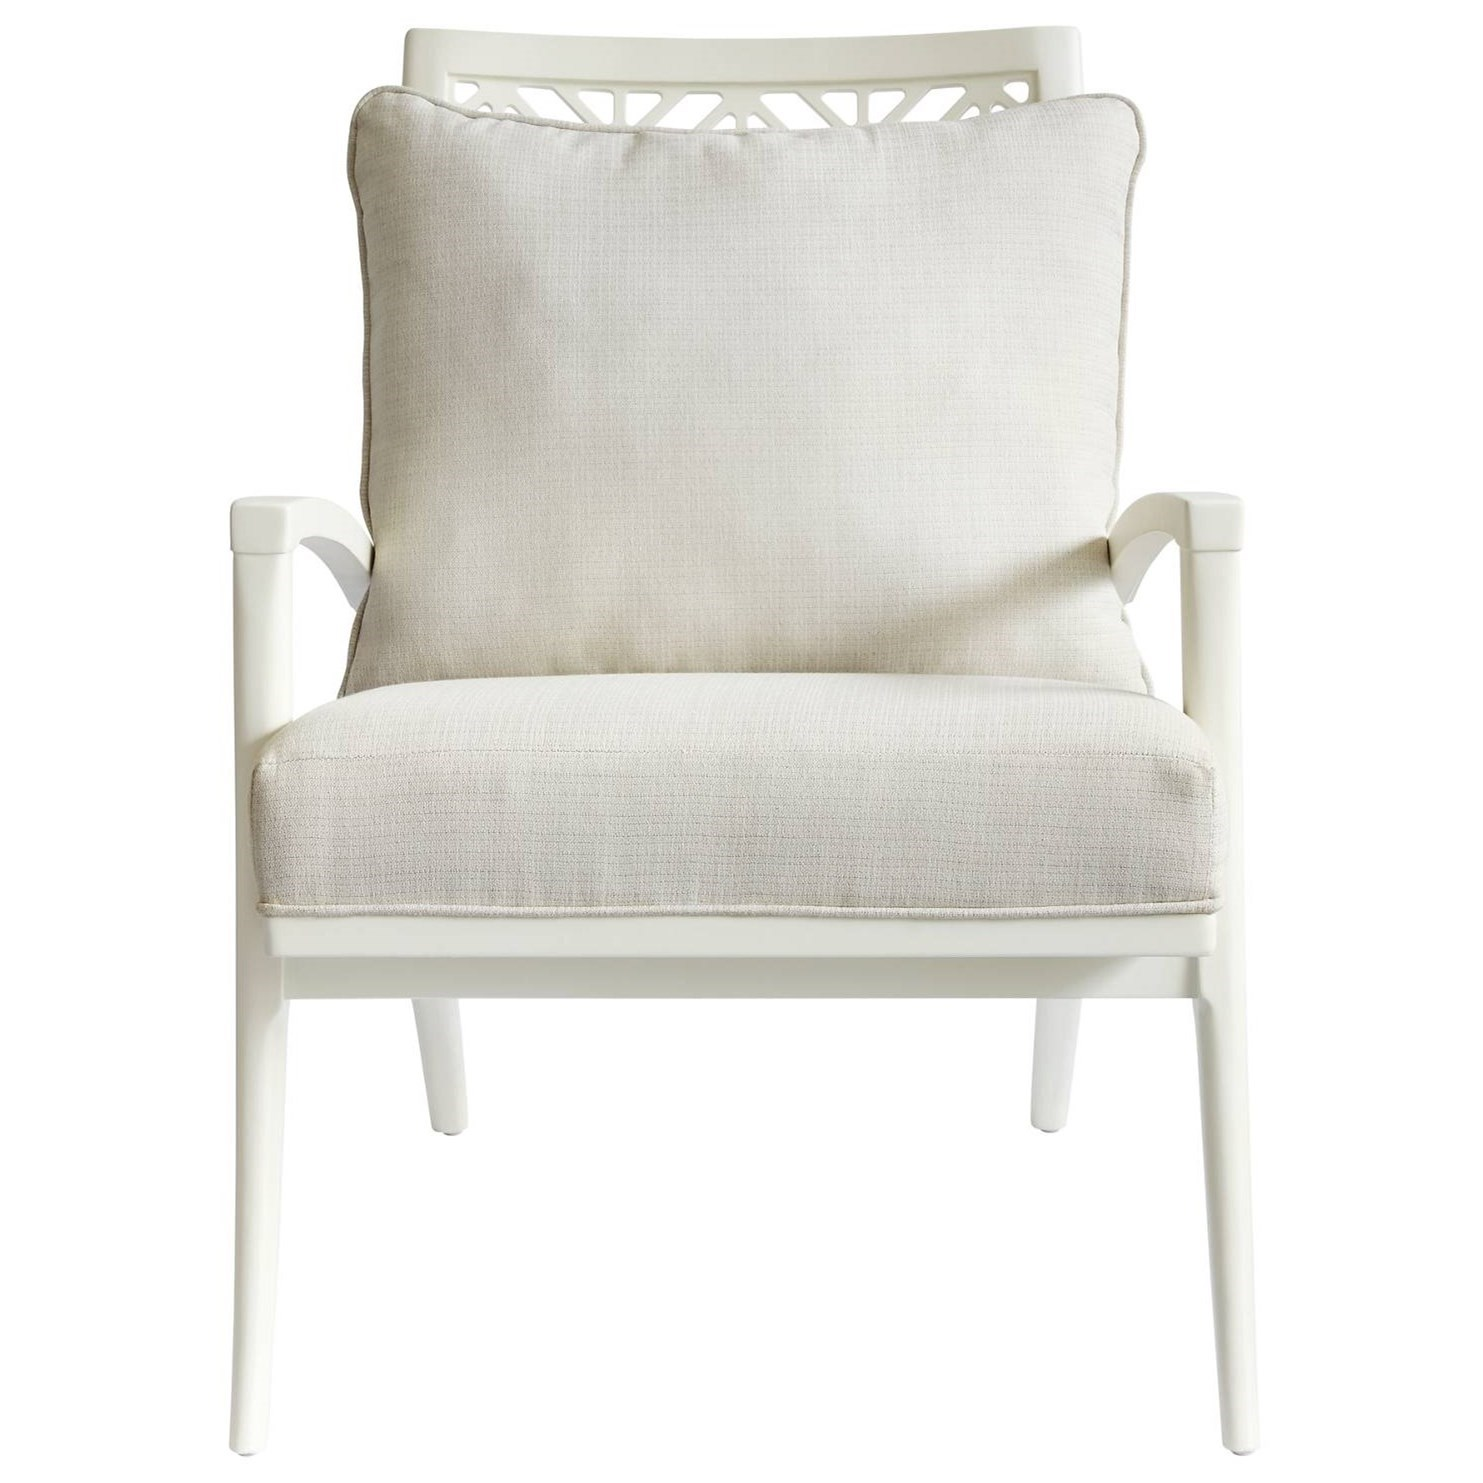 Stanley Furniture Coastal Living Oasis Catalina Accent Chair - Item Number: 527-25-74